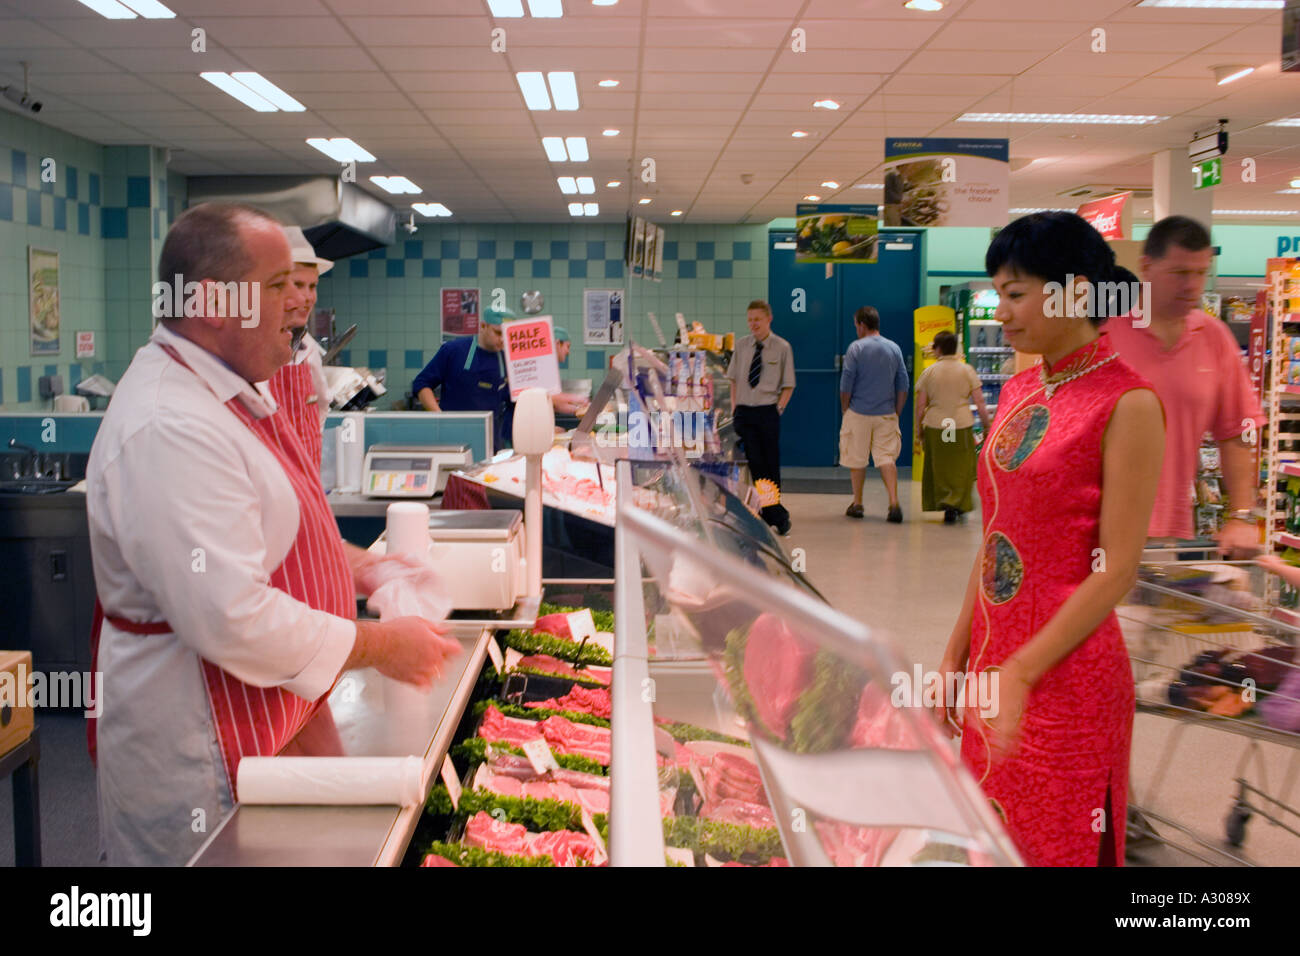 Stunning Chinese Woman Wearing Traditional Dress Shopping In Supermarket With Wedding Traditions